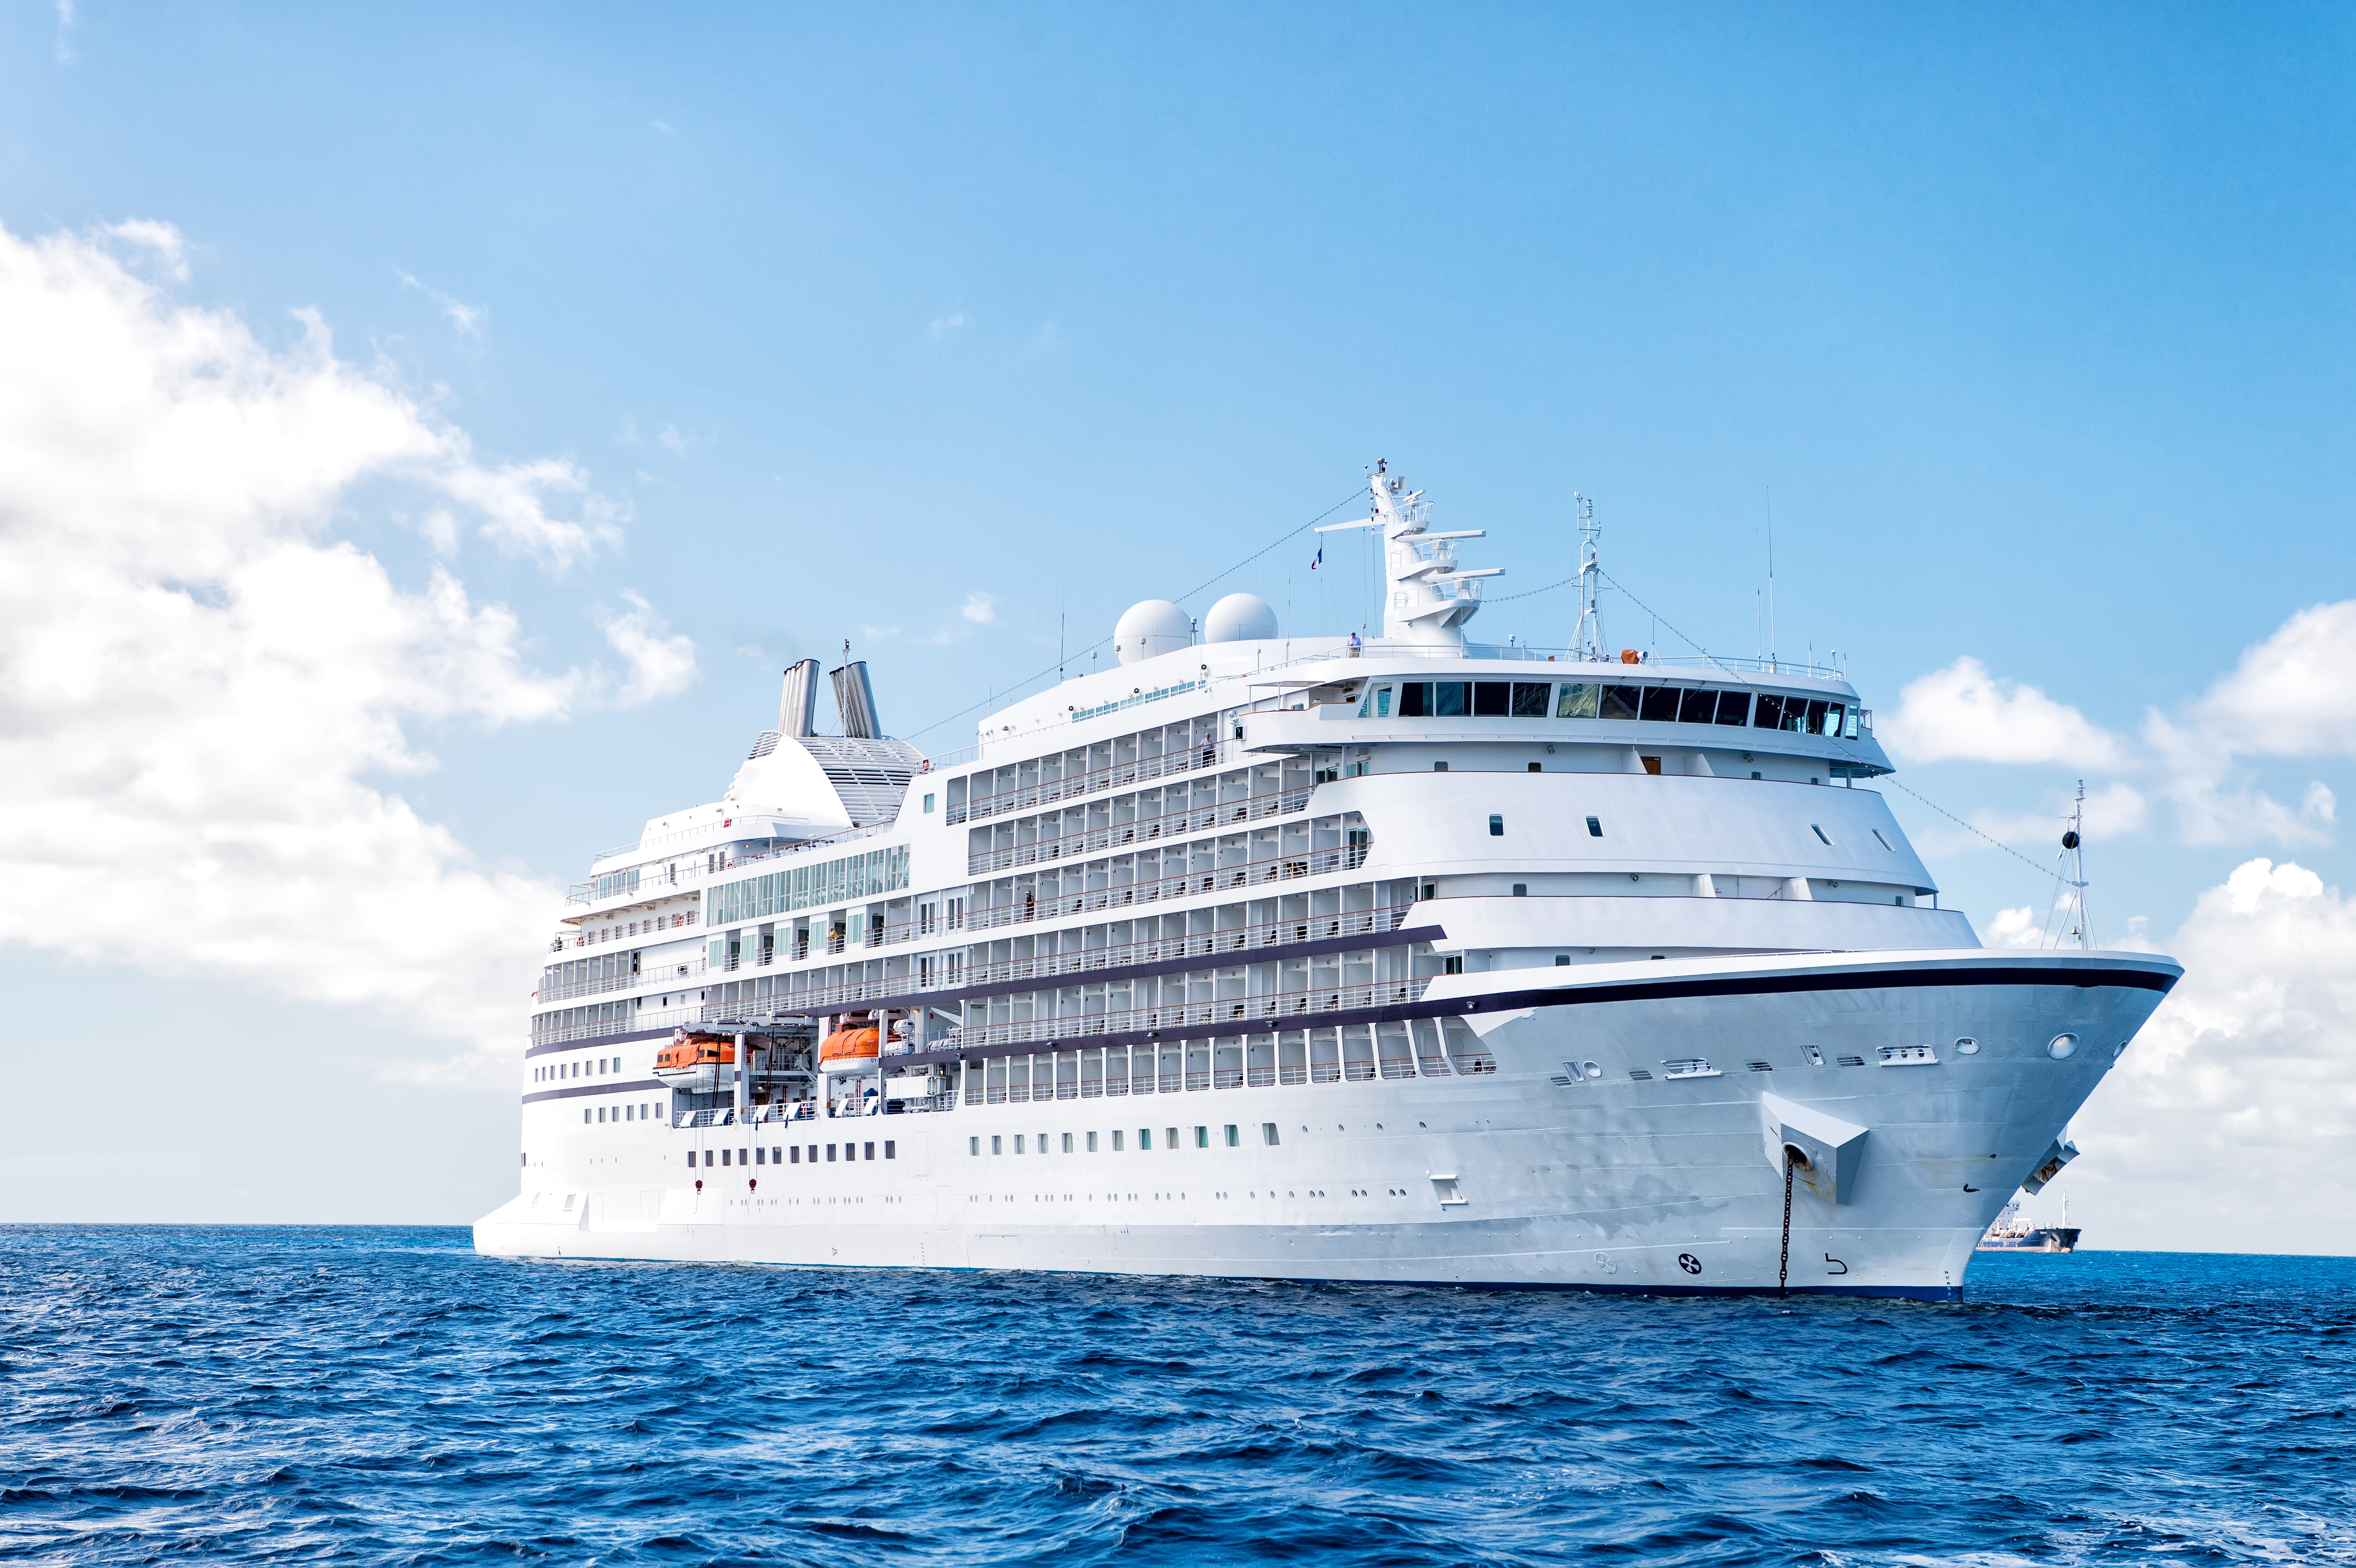 Large luxury cruise ship on sea water and cloudy sky background at sunny day at ocean